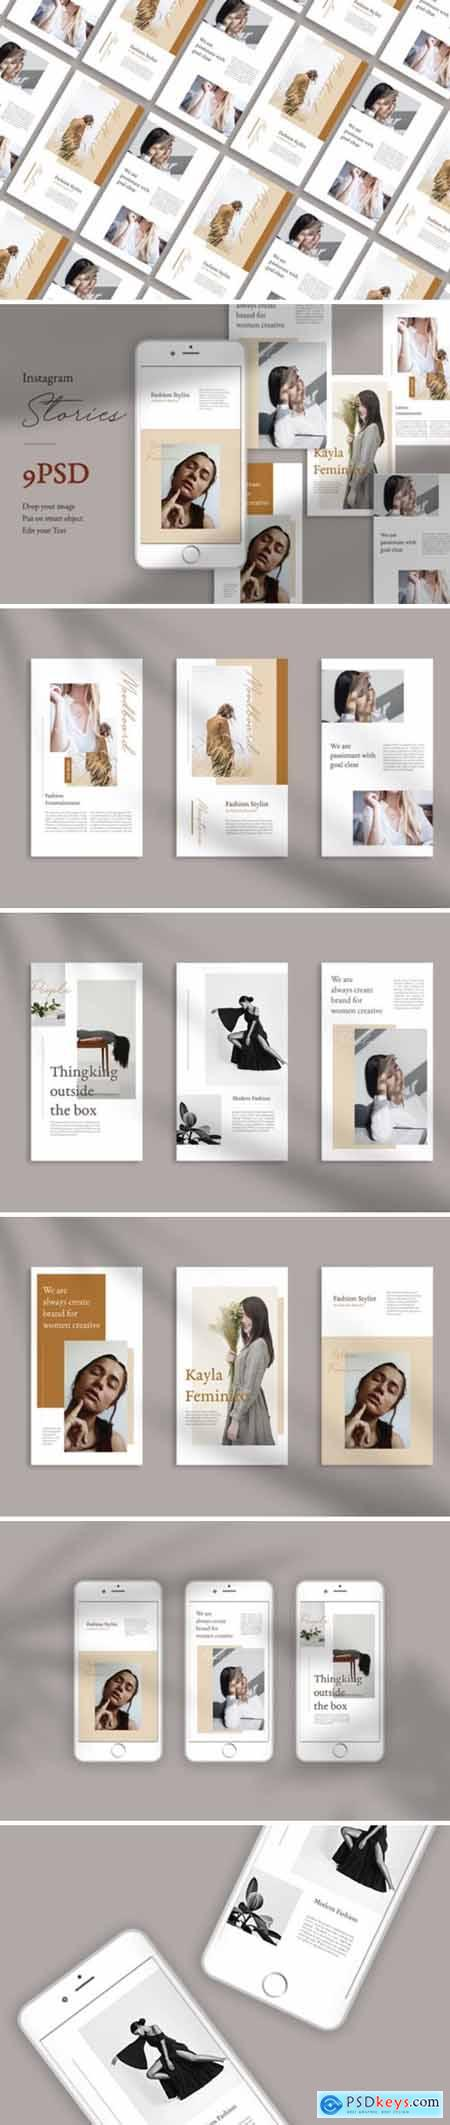 Moodboard Instagram Stories Templates 1705701